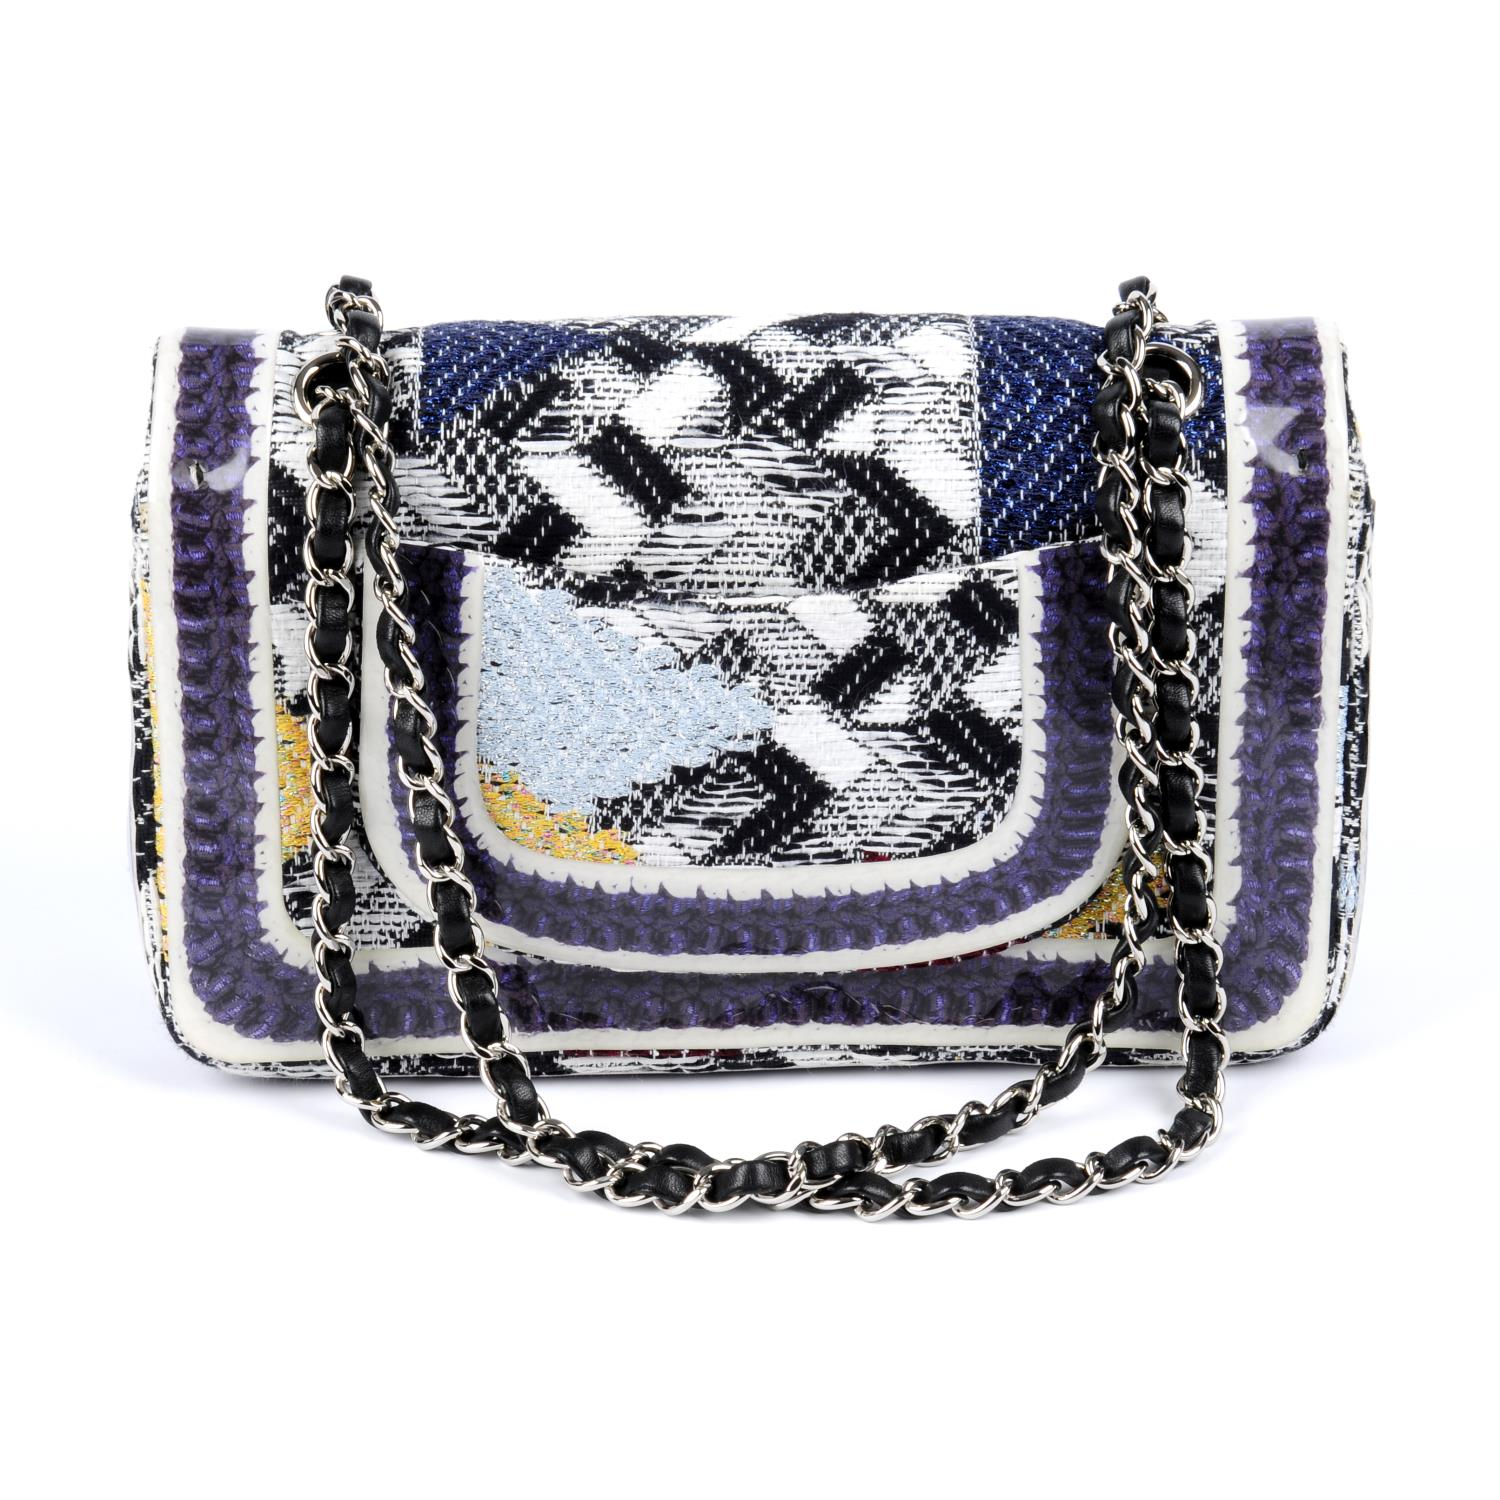 CHANEL - a Silicone-Covered Tweed Double Flap handbag. - Image 2 of 4